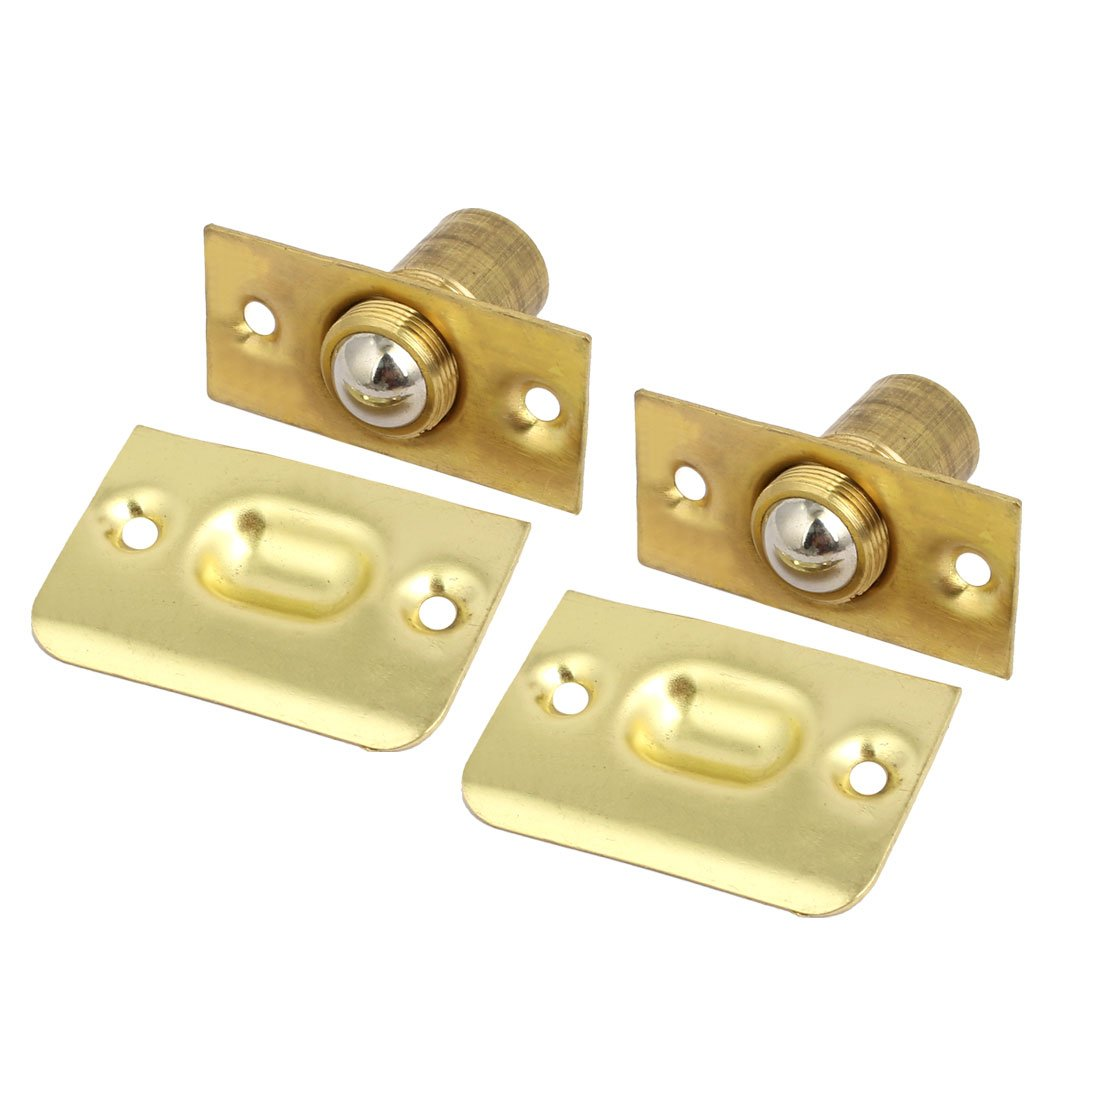 uxcell Door Cabinet Brass Adjustable Ball Catch Latches Catchers Hardware 2pcs